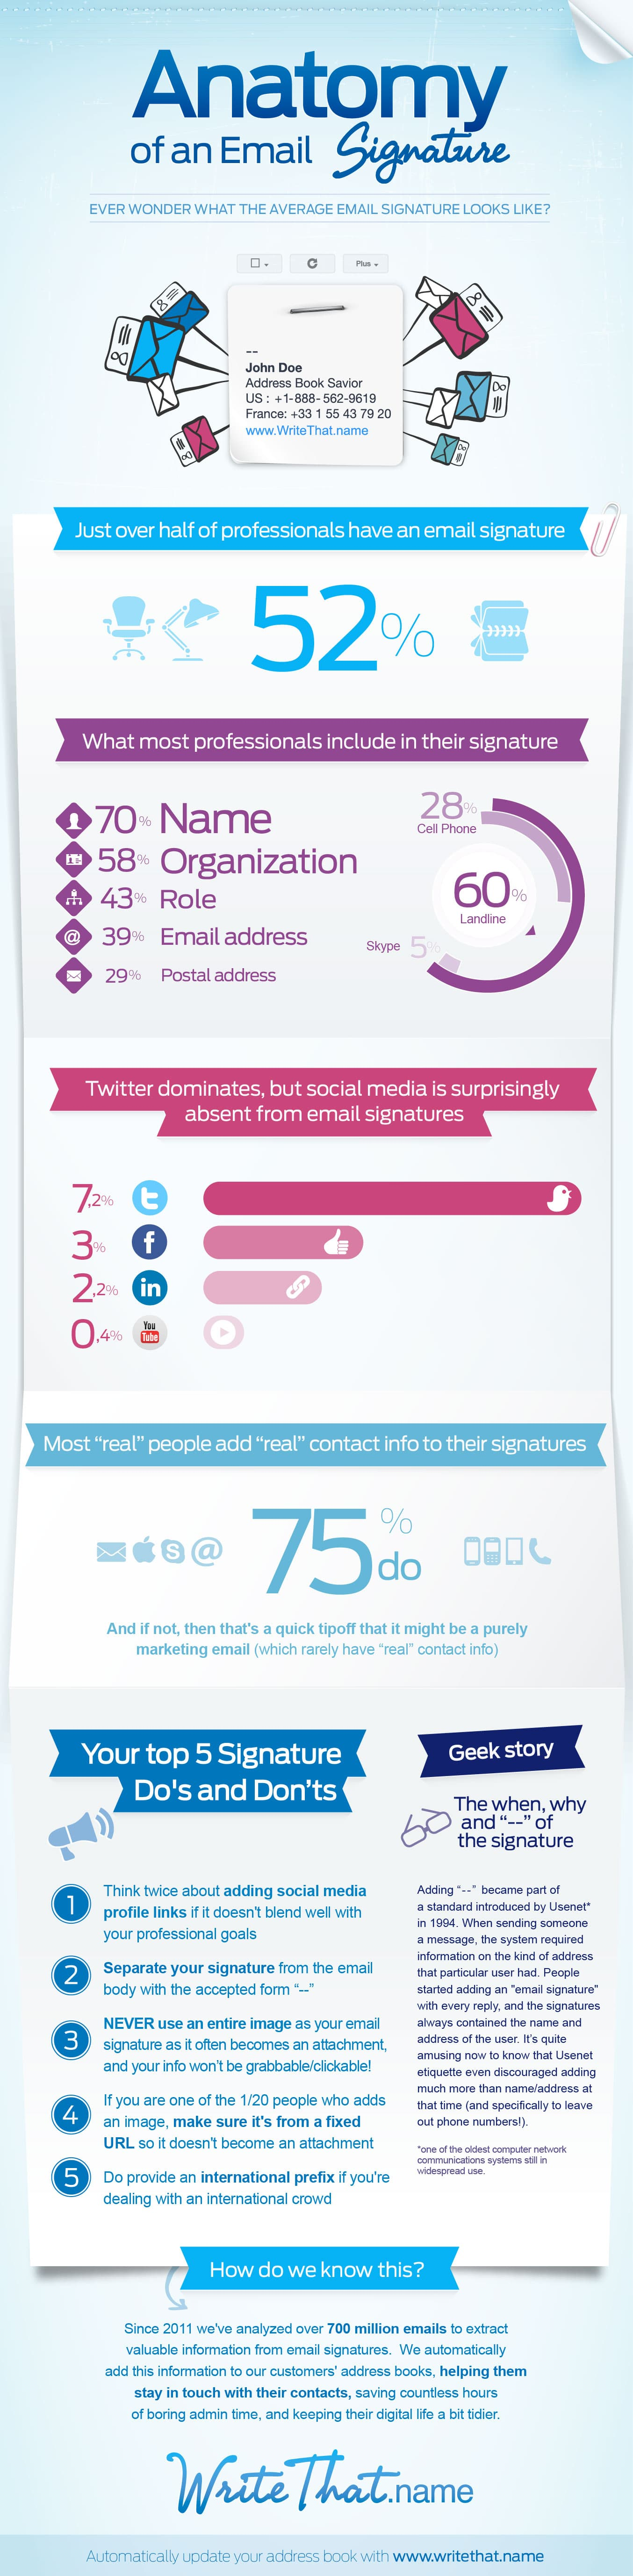 The Anatomy Of A Professional Email Signature [Infographic]